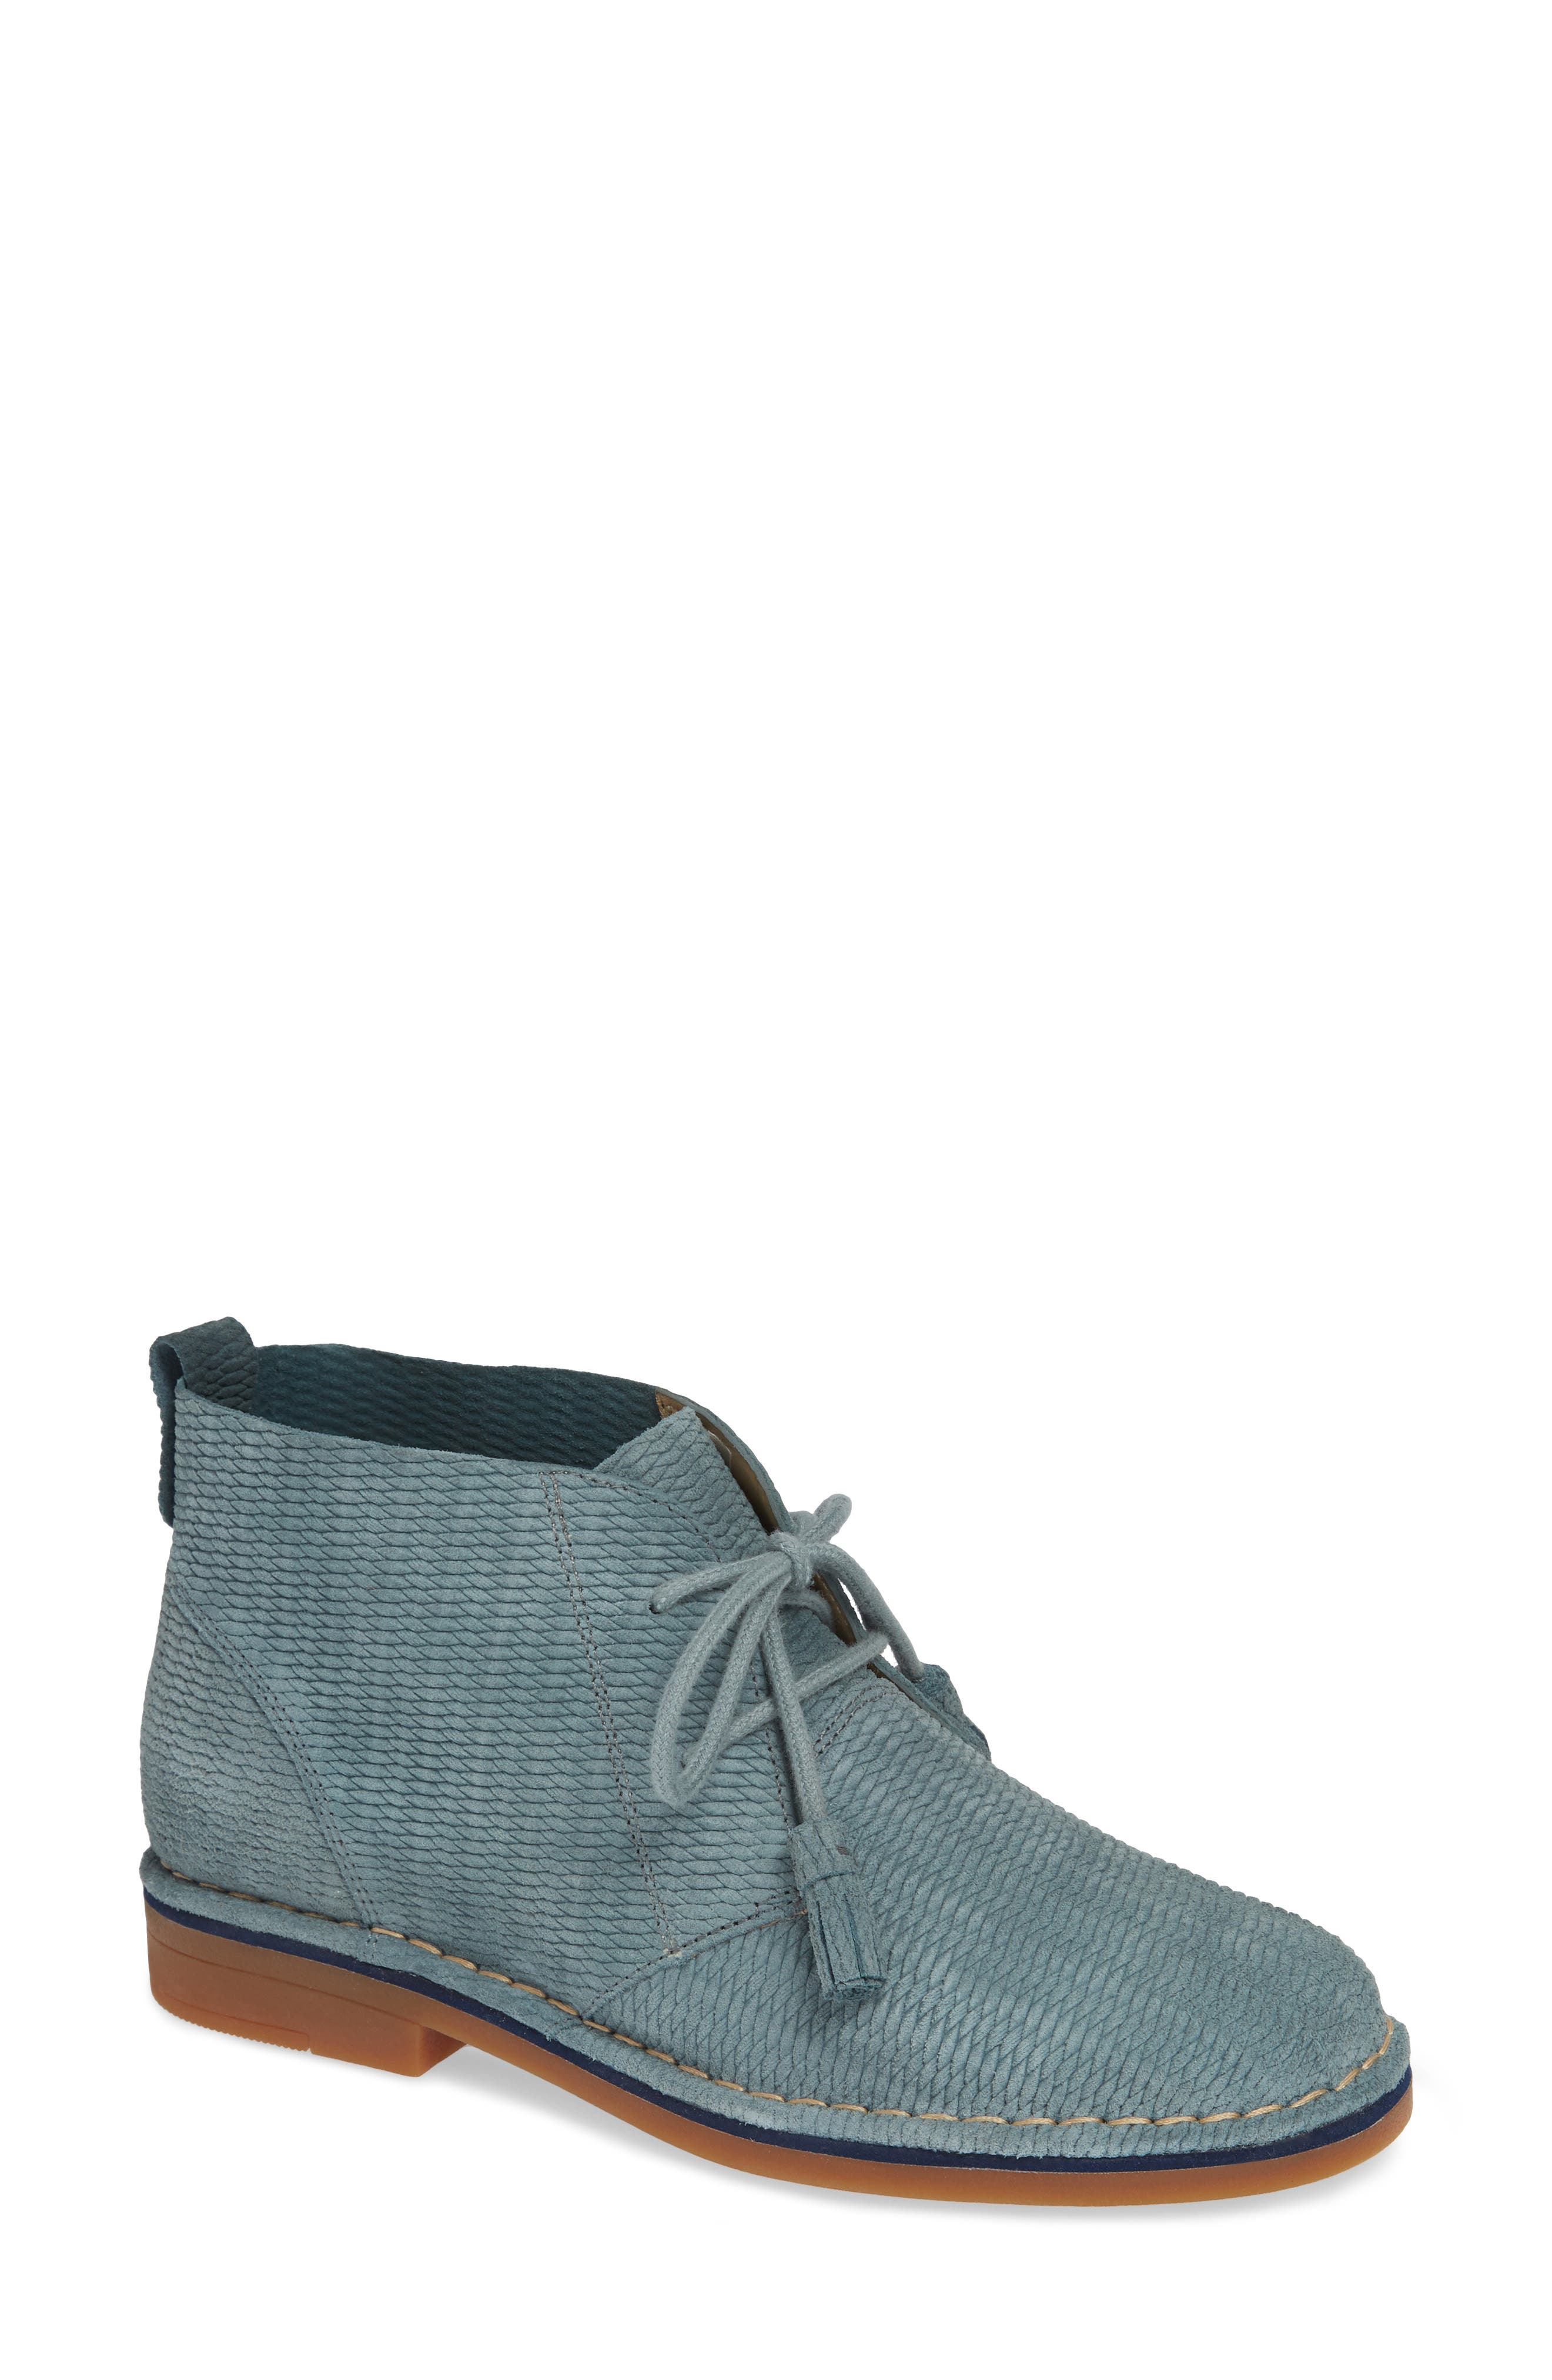 'Cyra Catelyn' Chukka Boot,                             Main thumbnail 1, color,                             Storm Embossed Suede